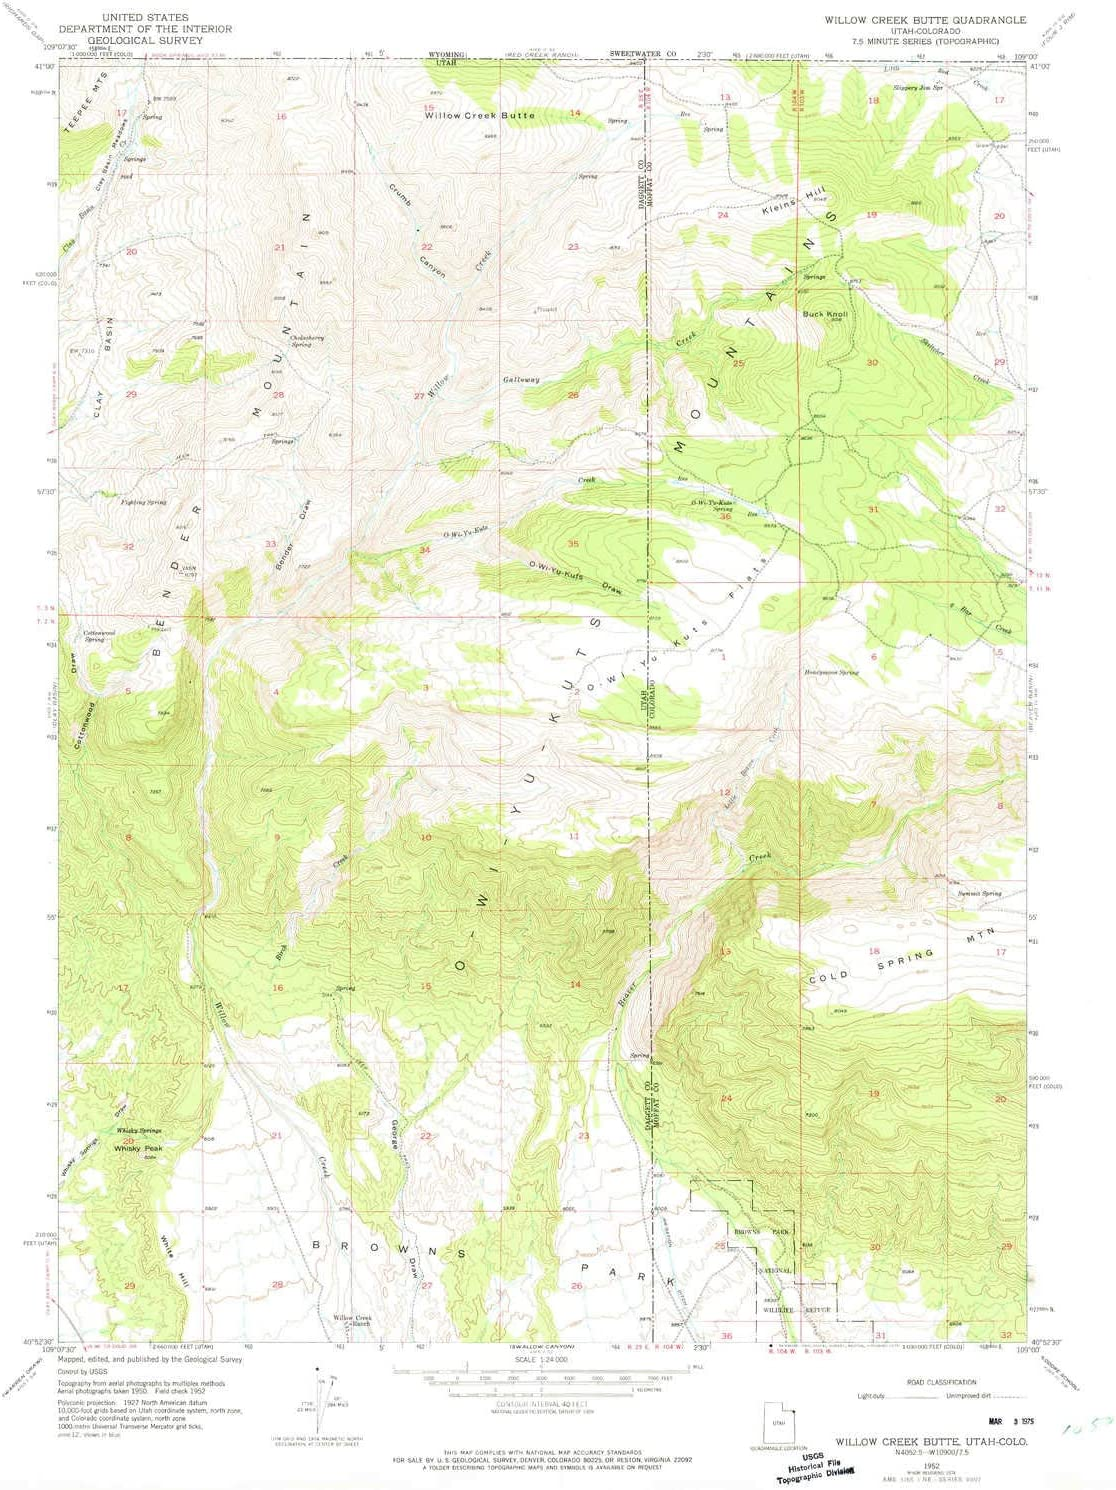 Willow New color Creek Butte UT topo map 1:24000 Minute 7.5 35% OFF X Scale